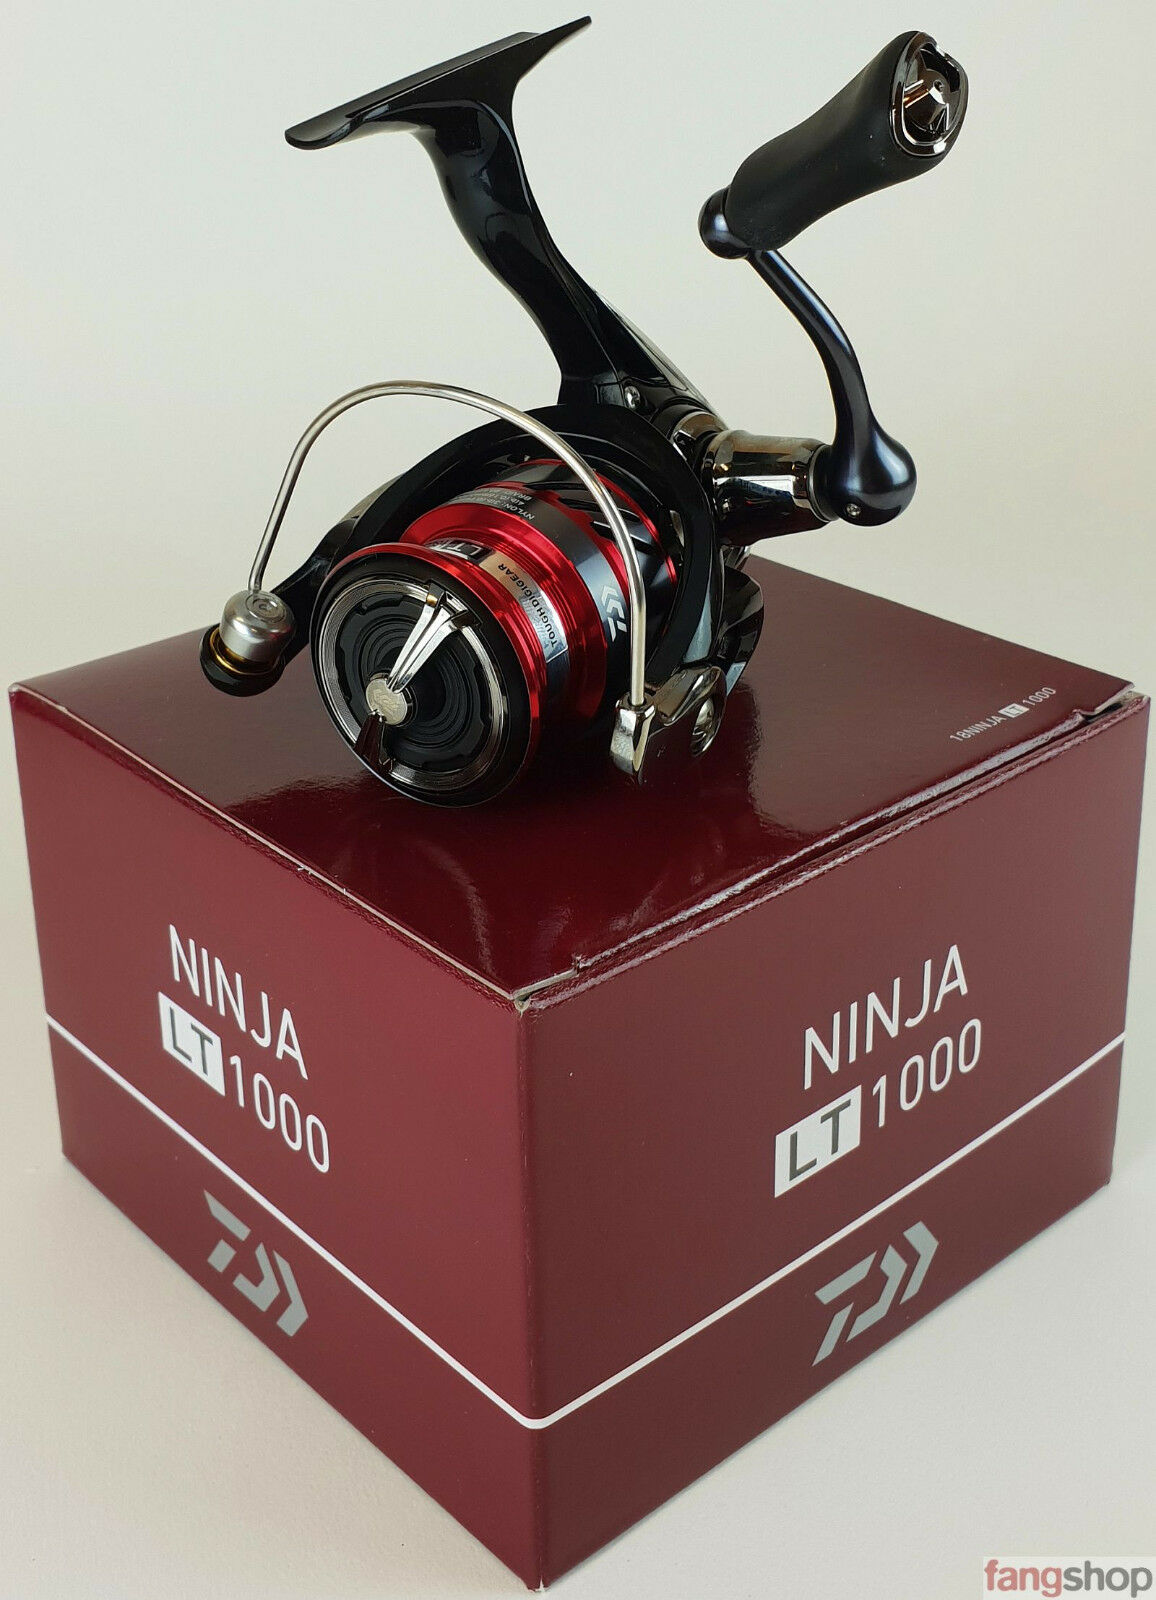 Superleichte Angelrolle Daiwa NINJA LT 1000 2000 2500 3000 3000 3000 4000 5000 6000 NEW´19 b72d4d